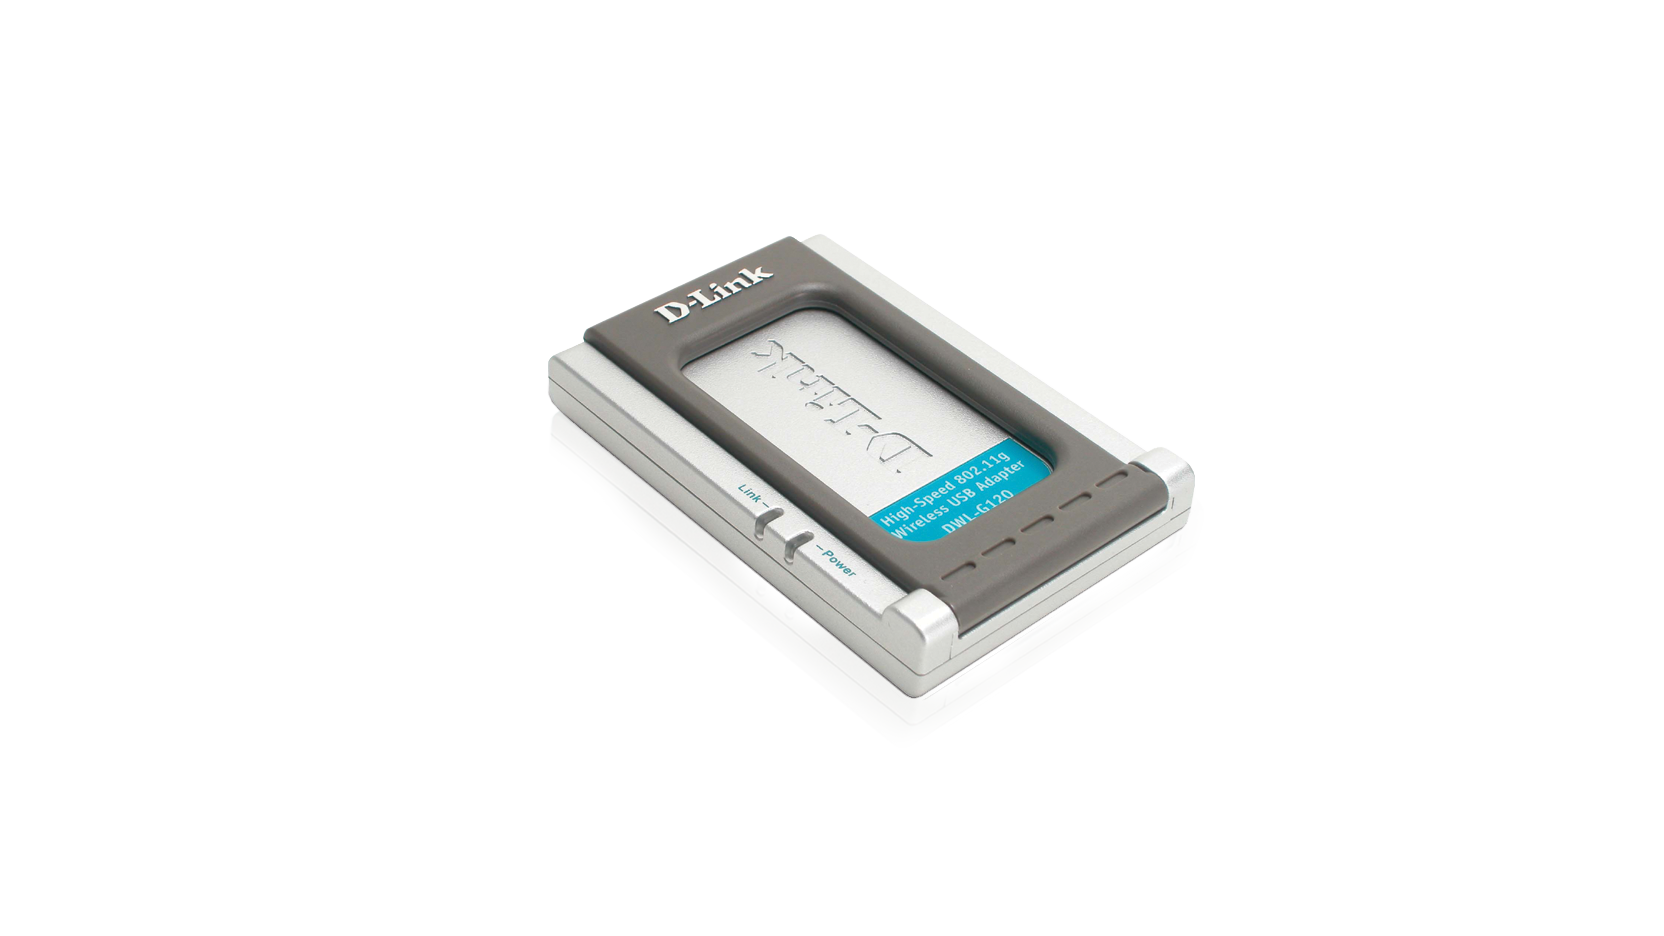 D-LINK DWL G120 DRIVERS FOR WINDOWS 7